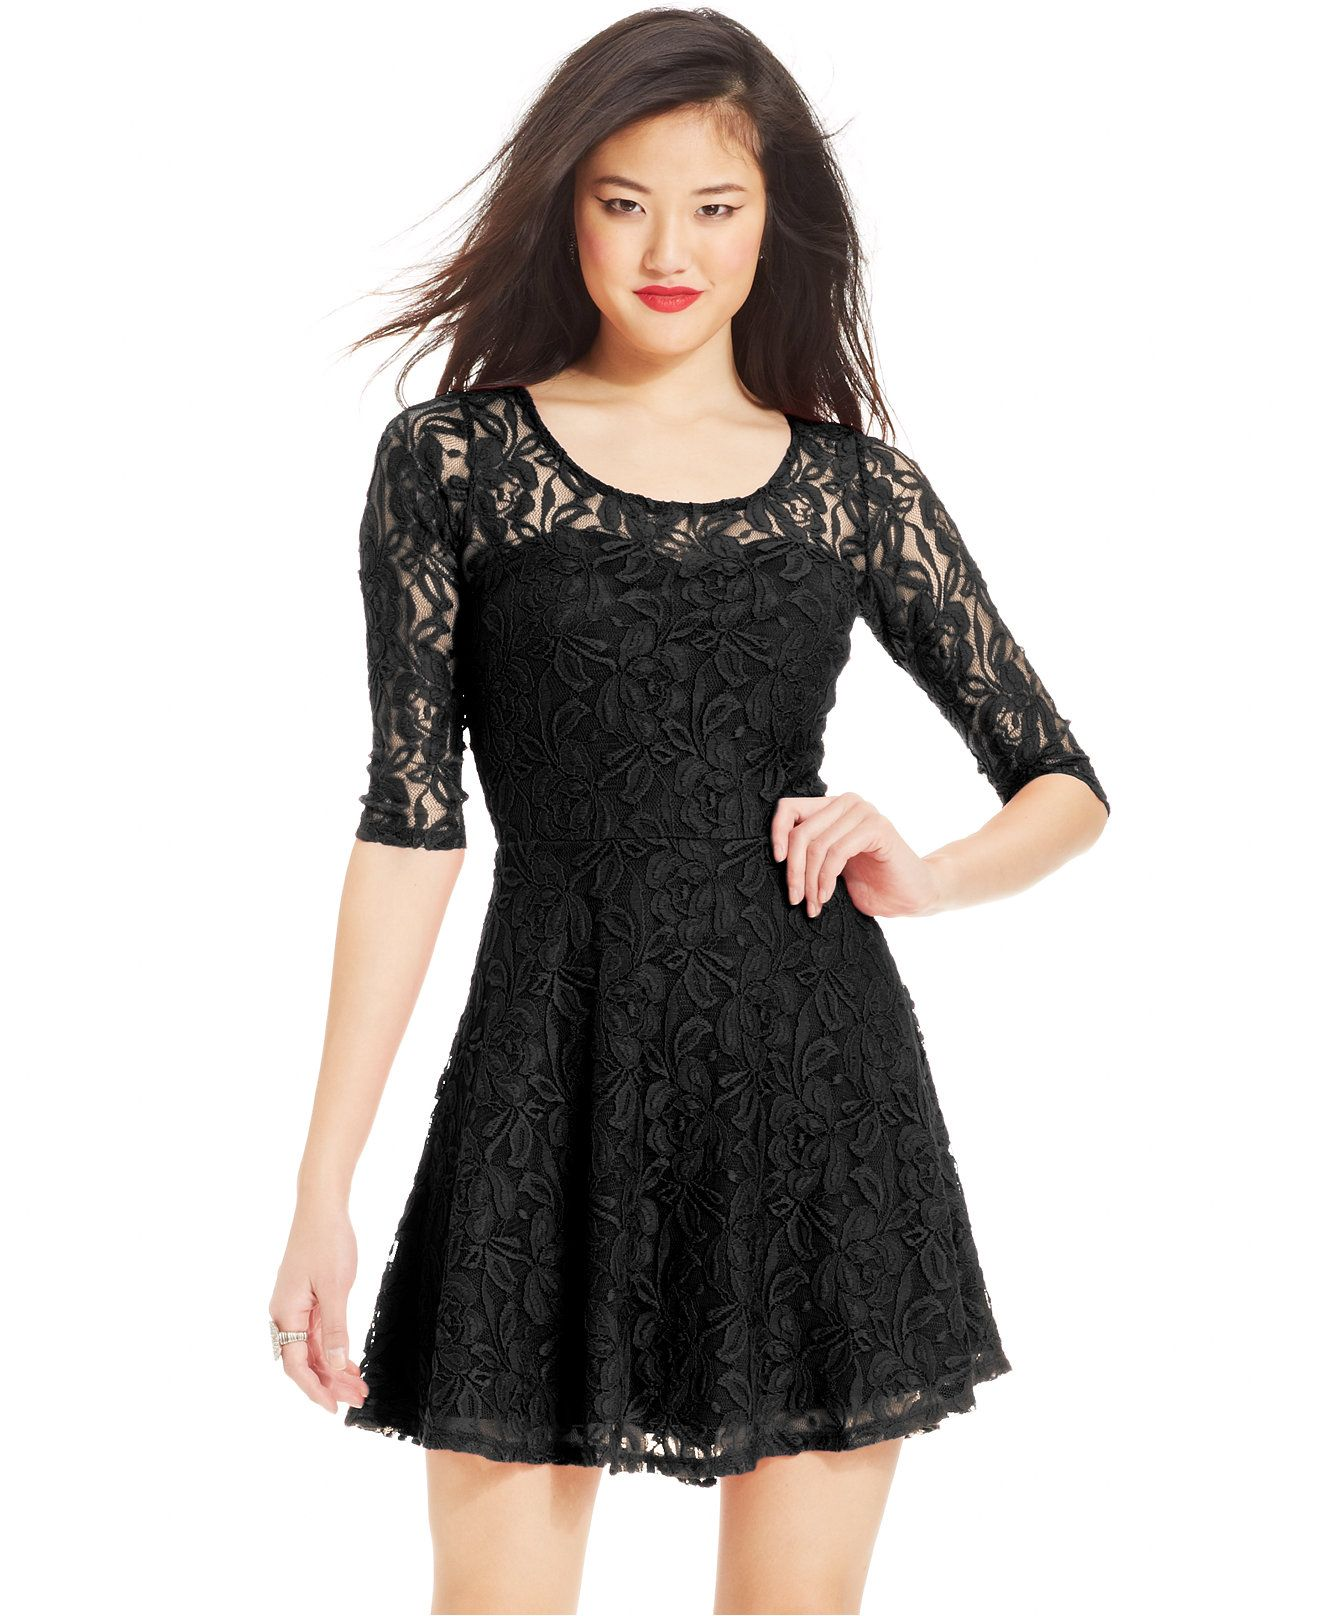 Black Cute dresses for juniors pictures exclusive photo